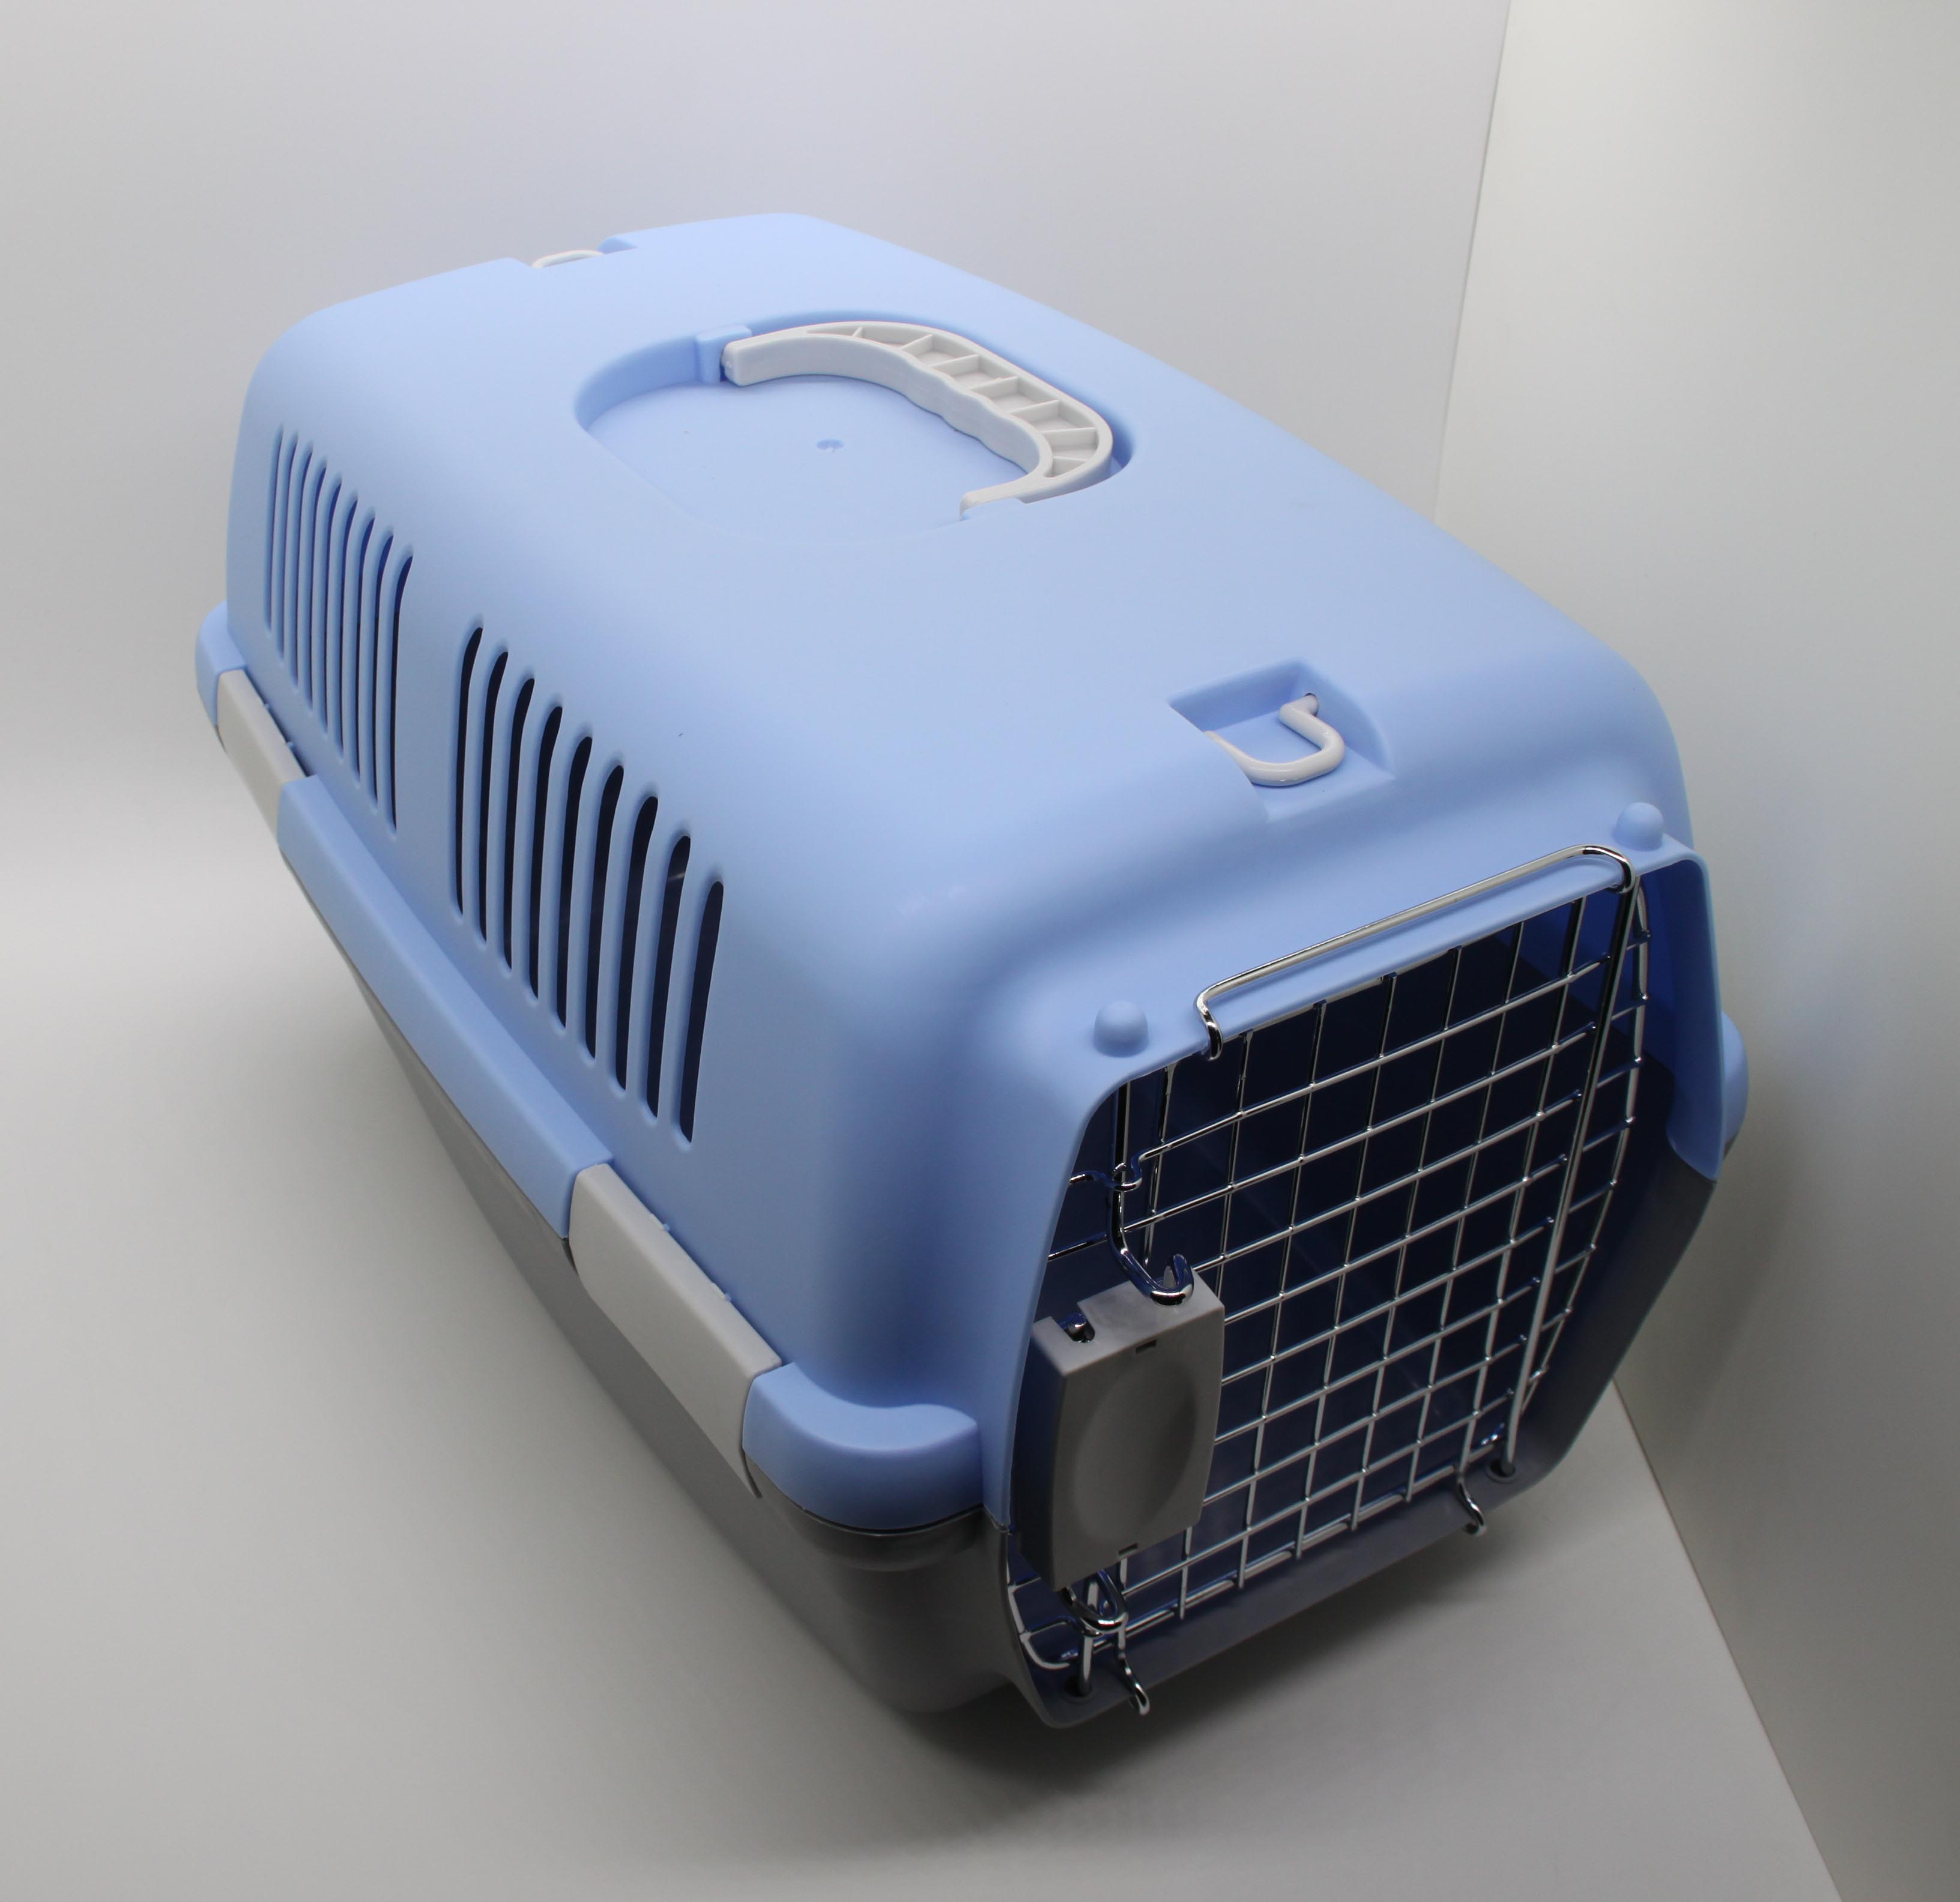 Aliexpress Com Buy Portable Dog Cat Pet Puppy Drinker: Pet Dog Cat Carrier Kennel Hard Crate Travel Portable Tote